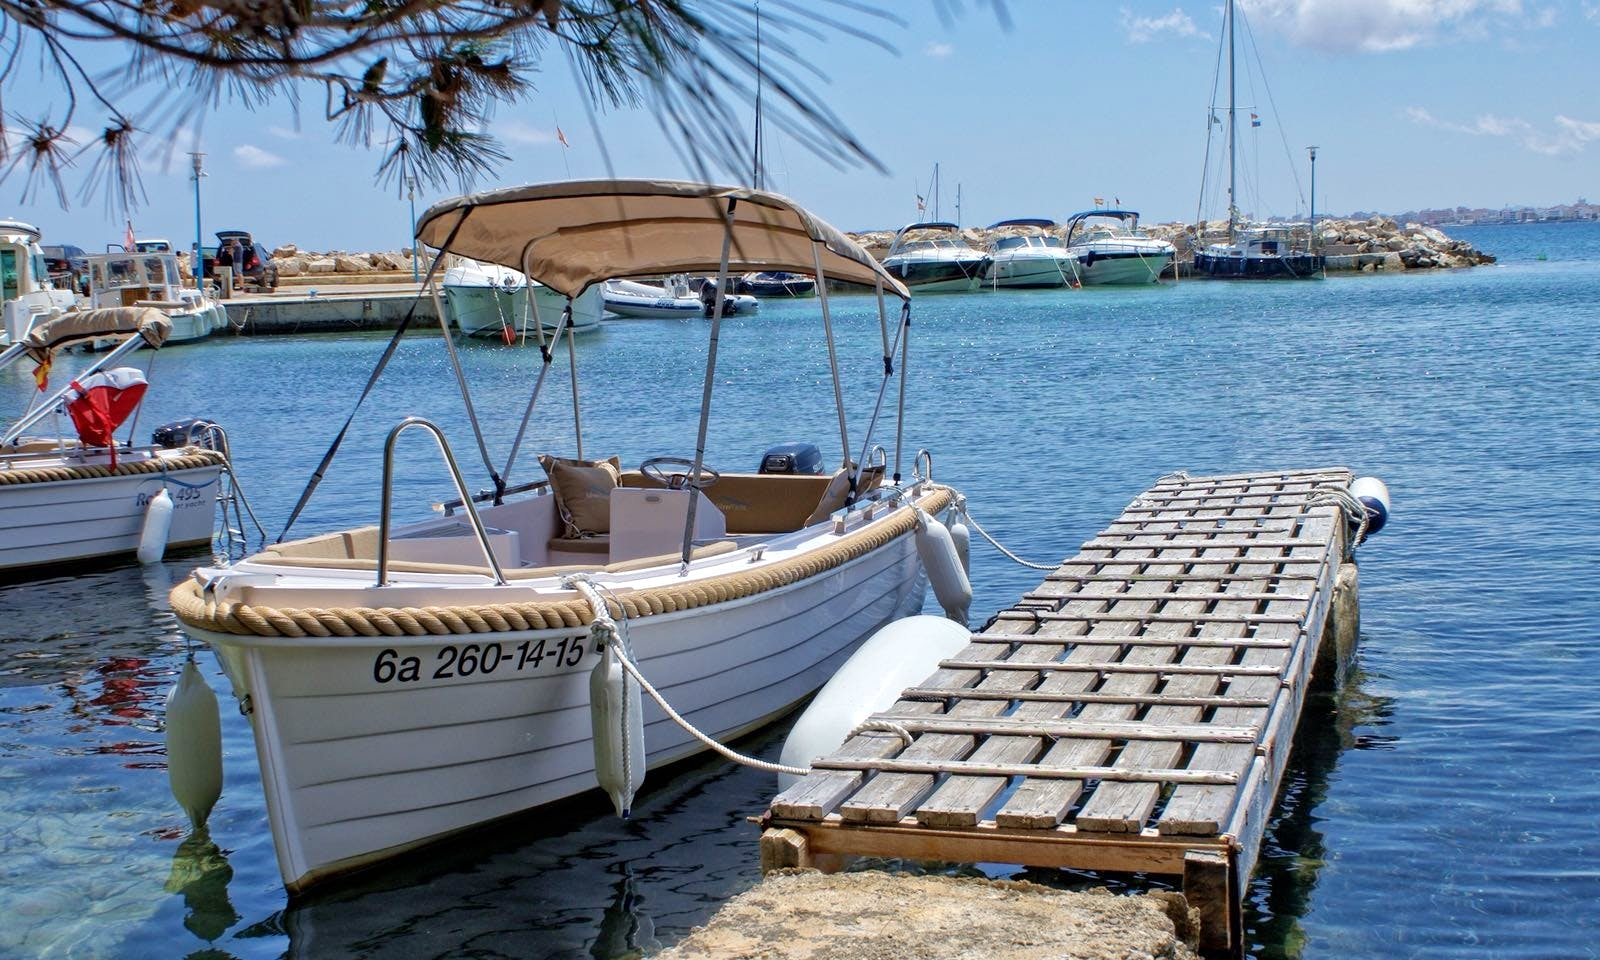 Take in the Views with this Center Console Charter in Sant Joan de Labritja, Spain